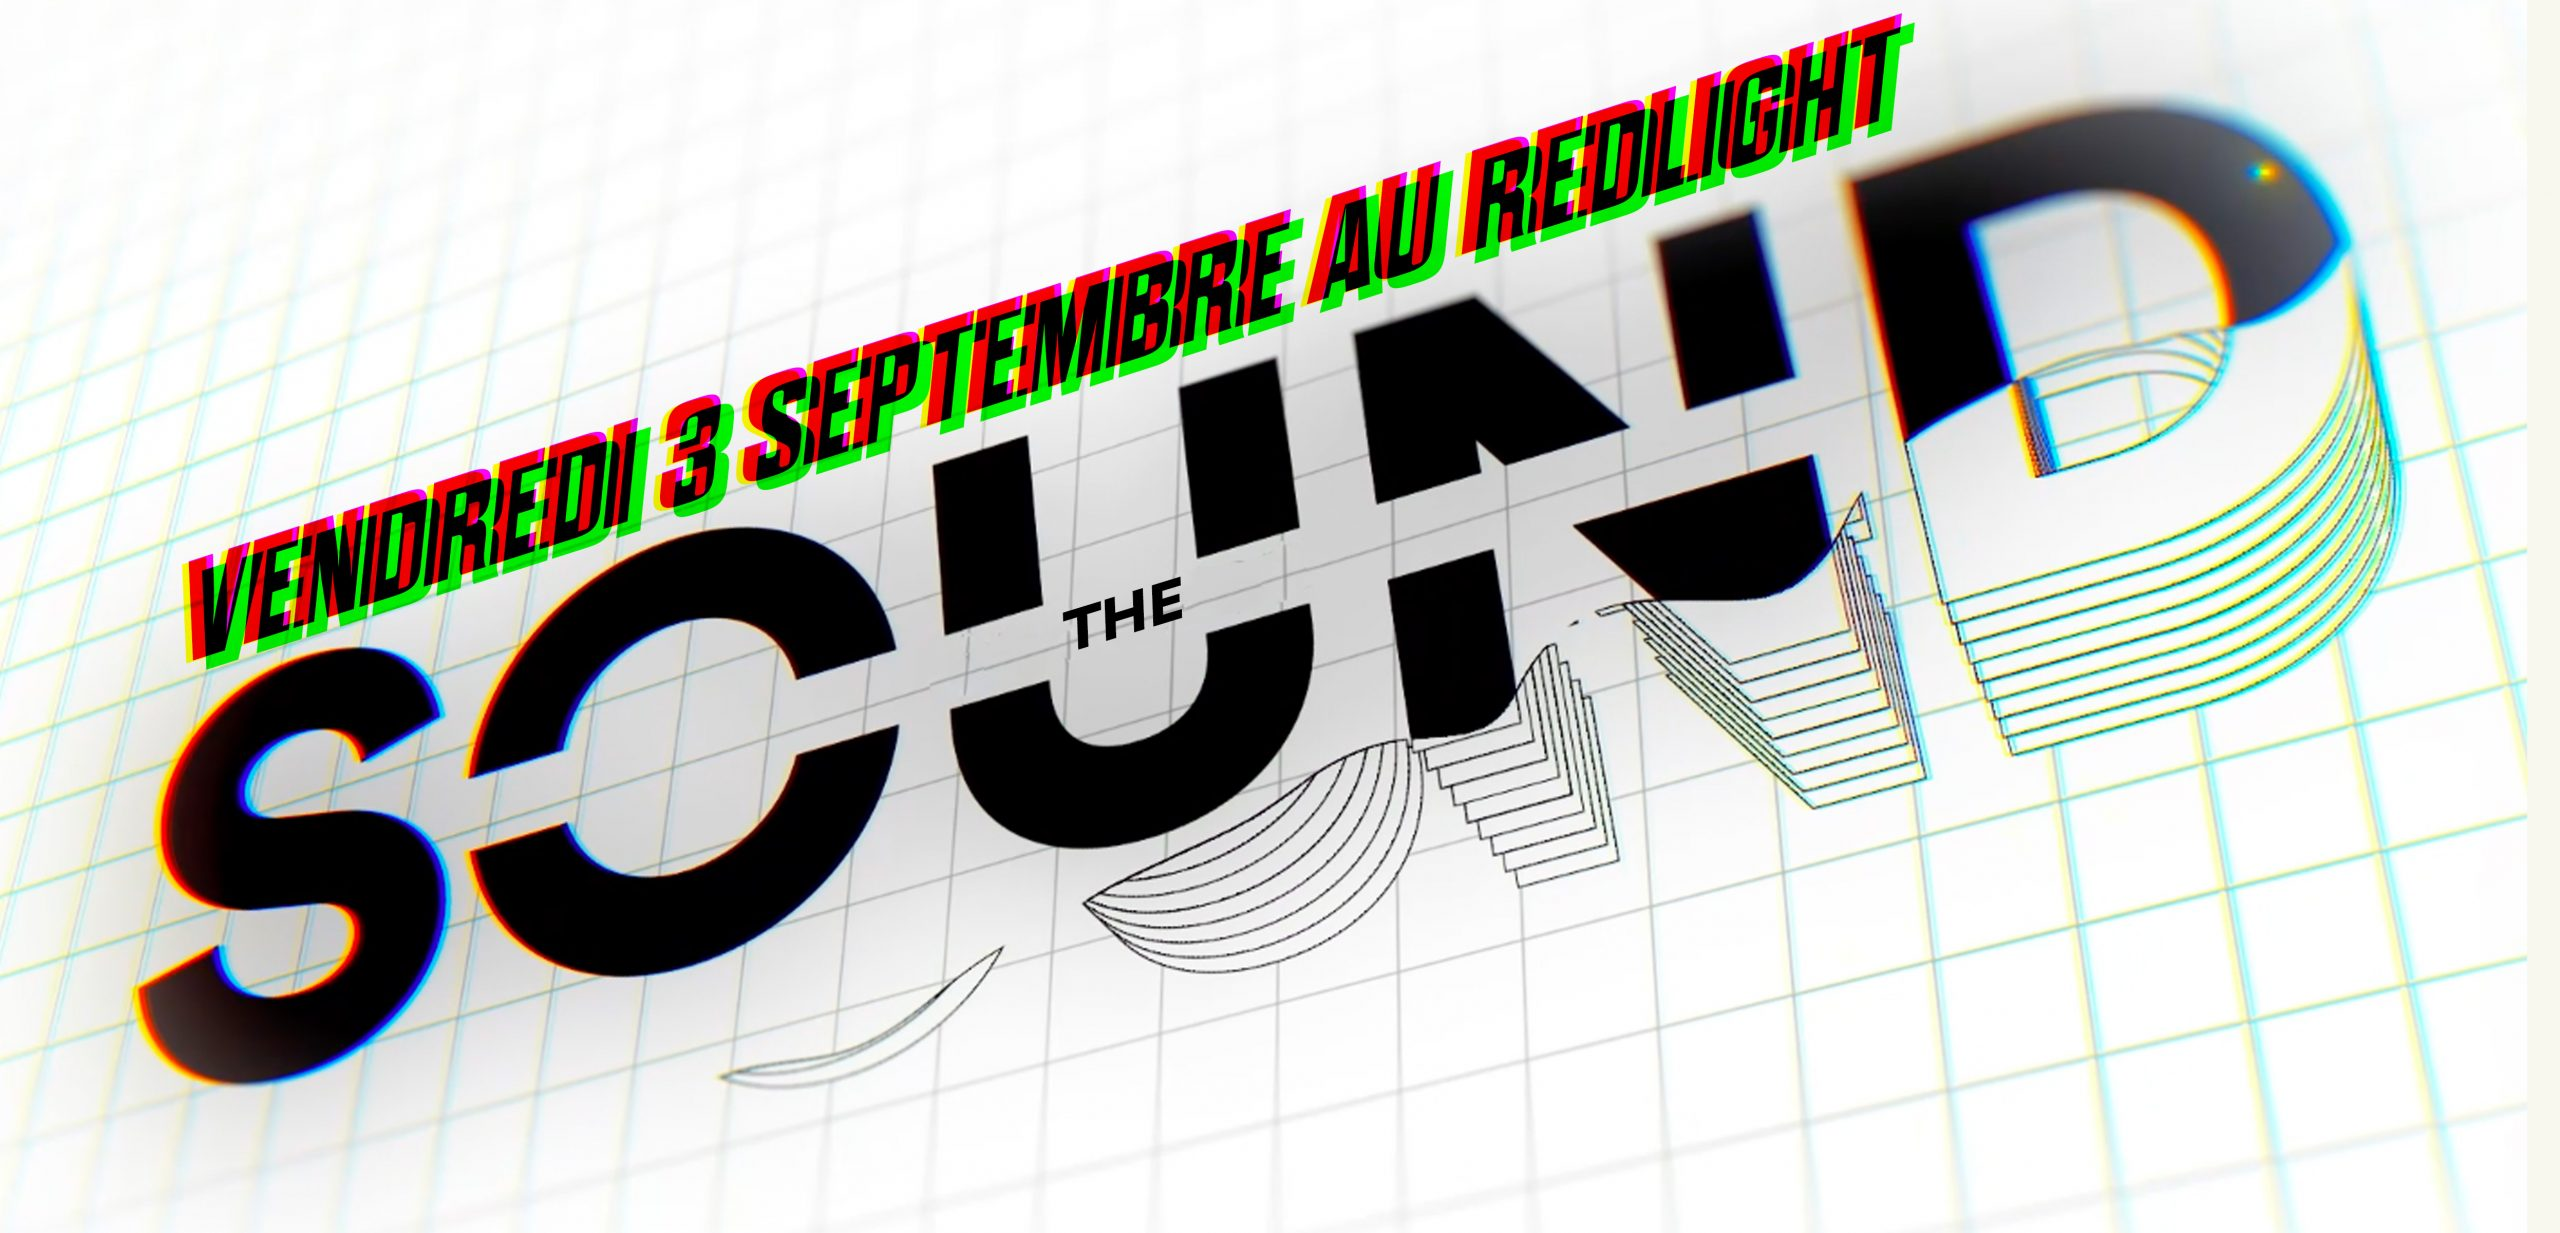 THE SOUND OF BITCH – VEN 3 SEPT<HR> @ GIBUS TOWER (Redlight)